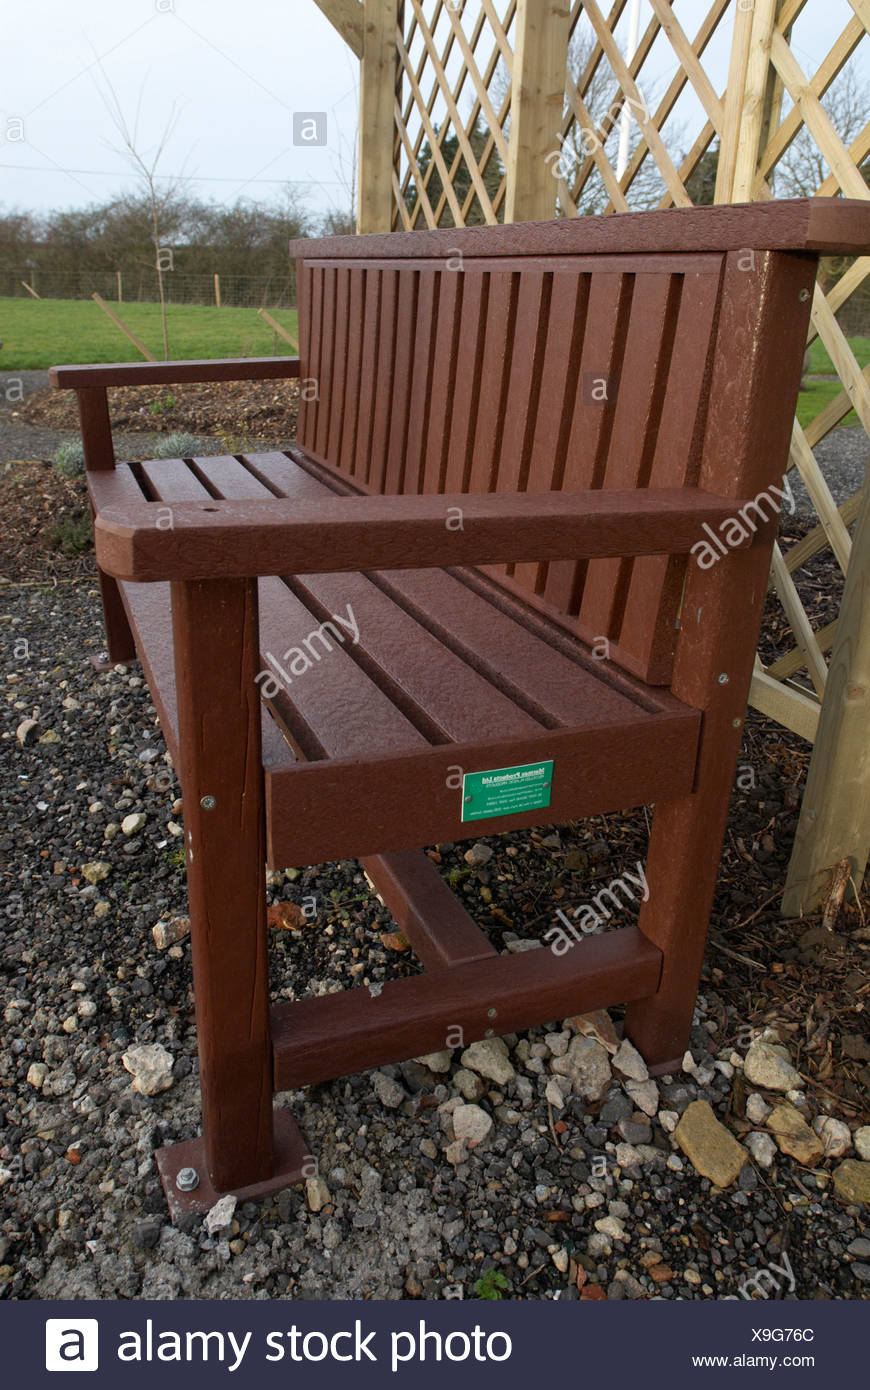 Picture of: Recycled Plastic Park Bench Stock Photo Alamy